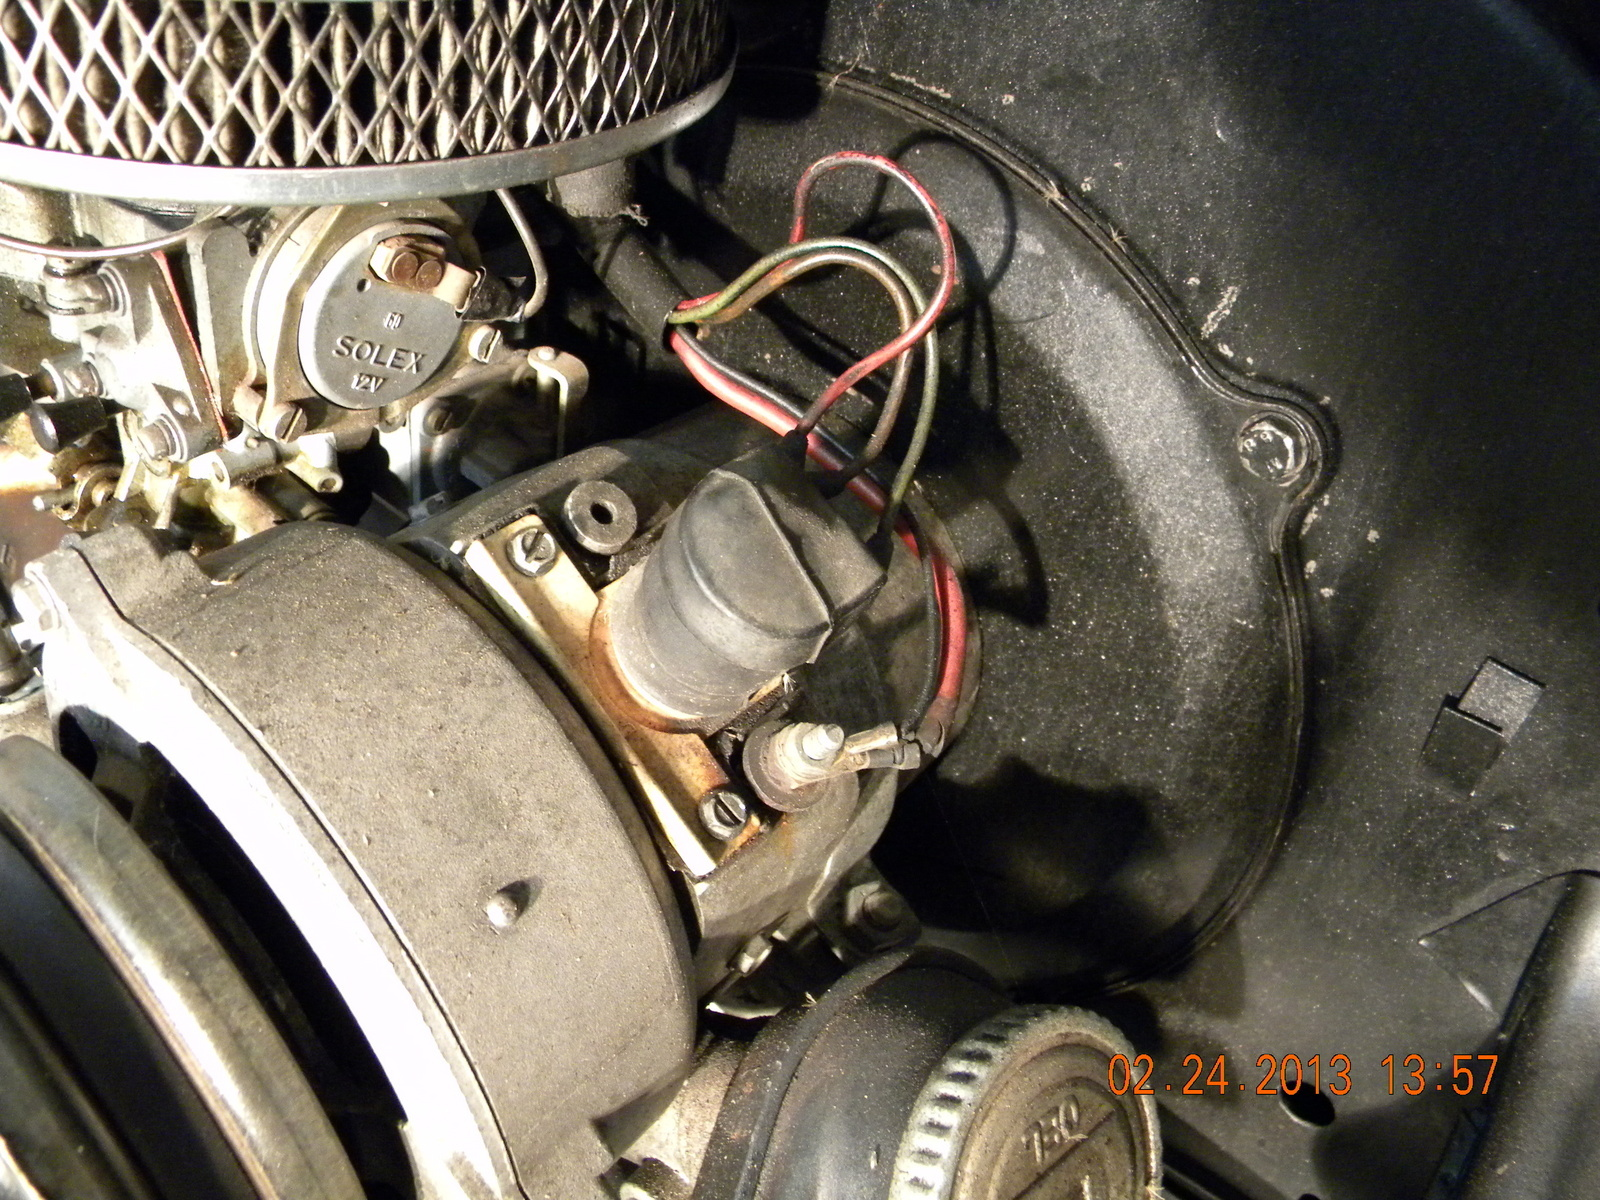 1974_volkswagen_beetle pic 8215095219041188070 1600x1200 volkswagen beetle questions try this again i have a 1974 beetle vw alternator conversion wiring diagram at bayanpartner.co